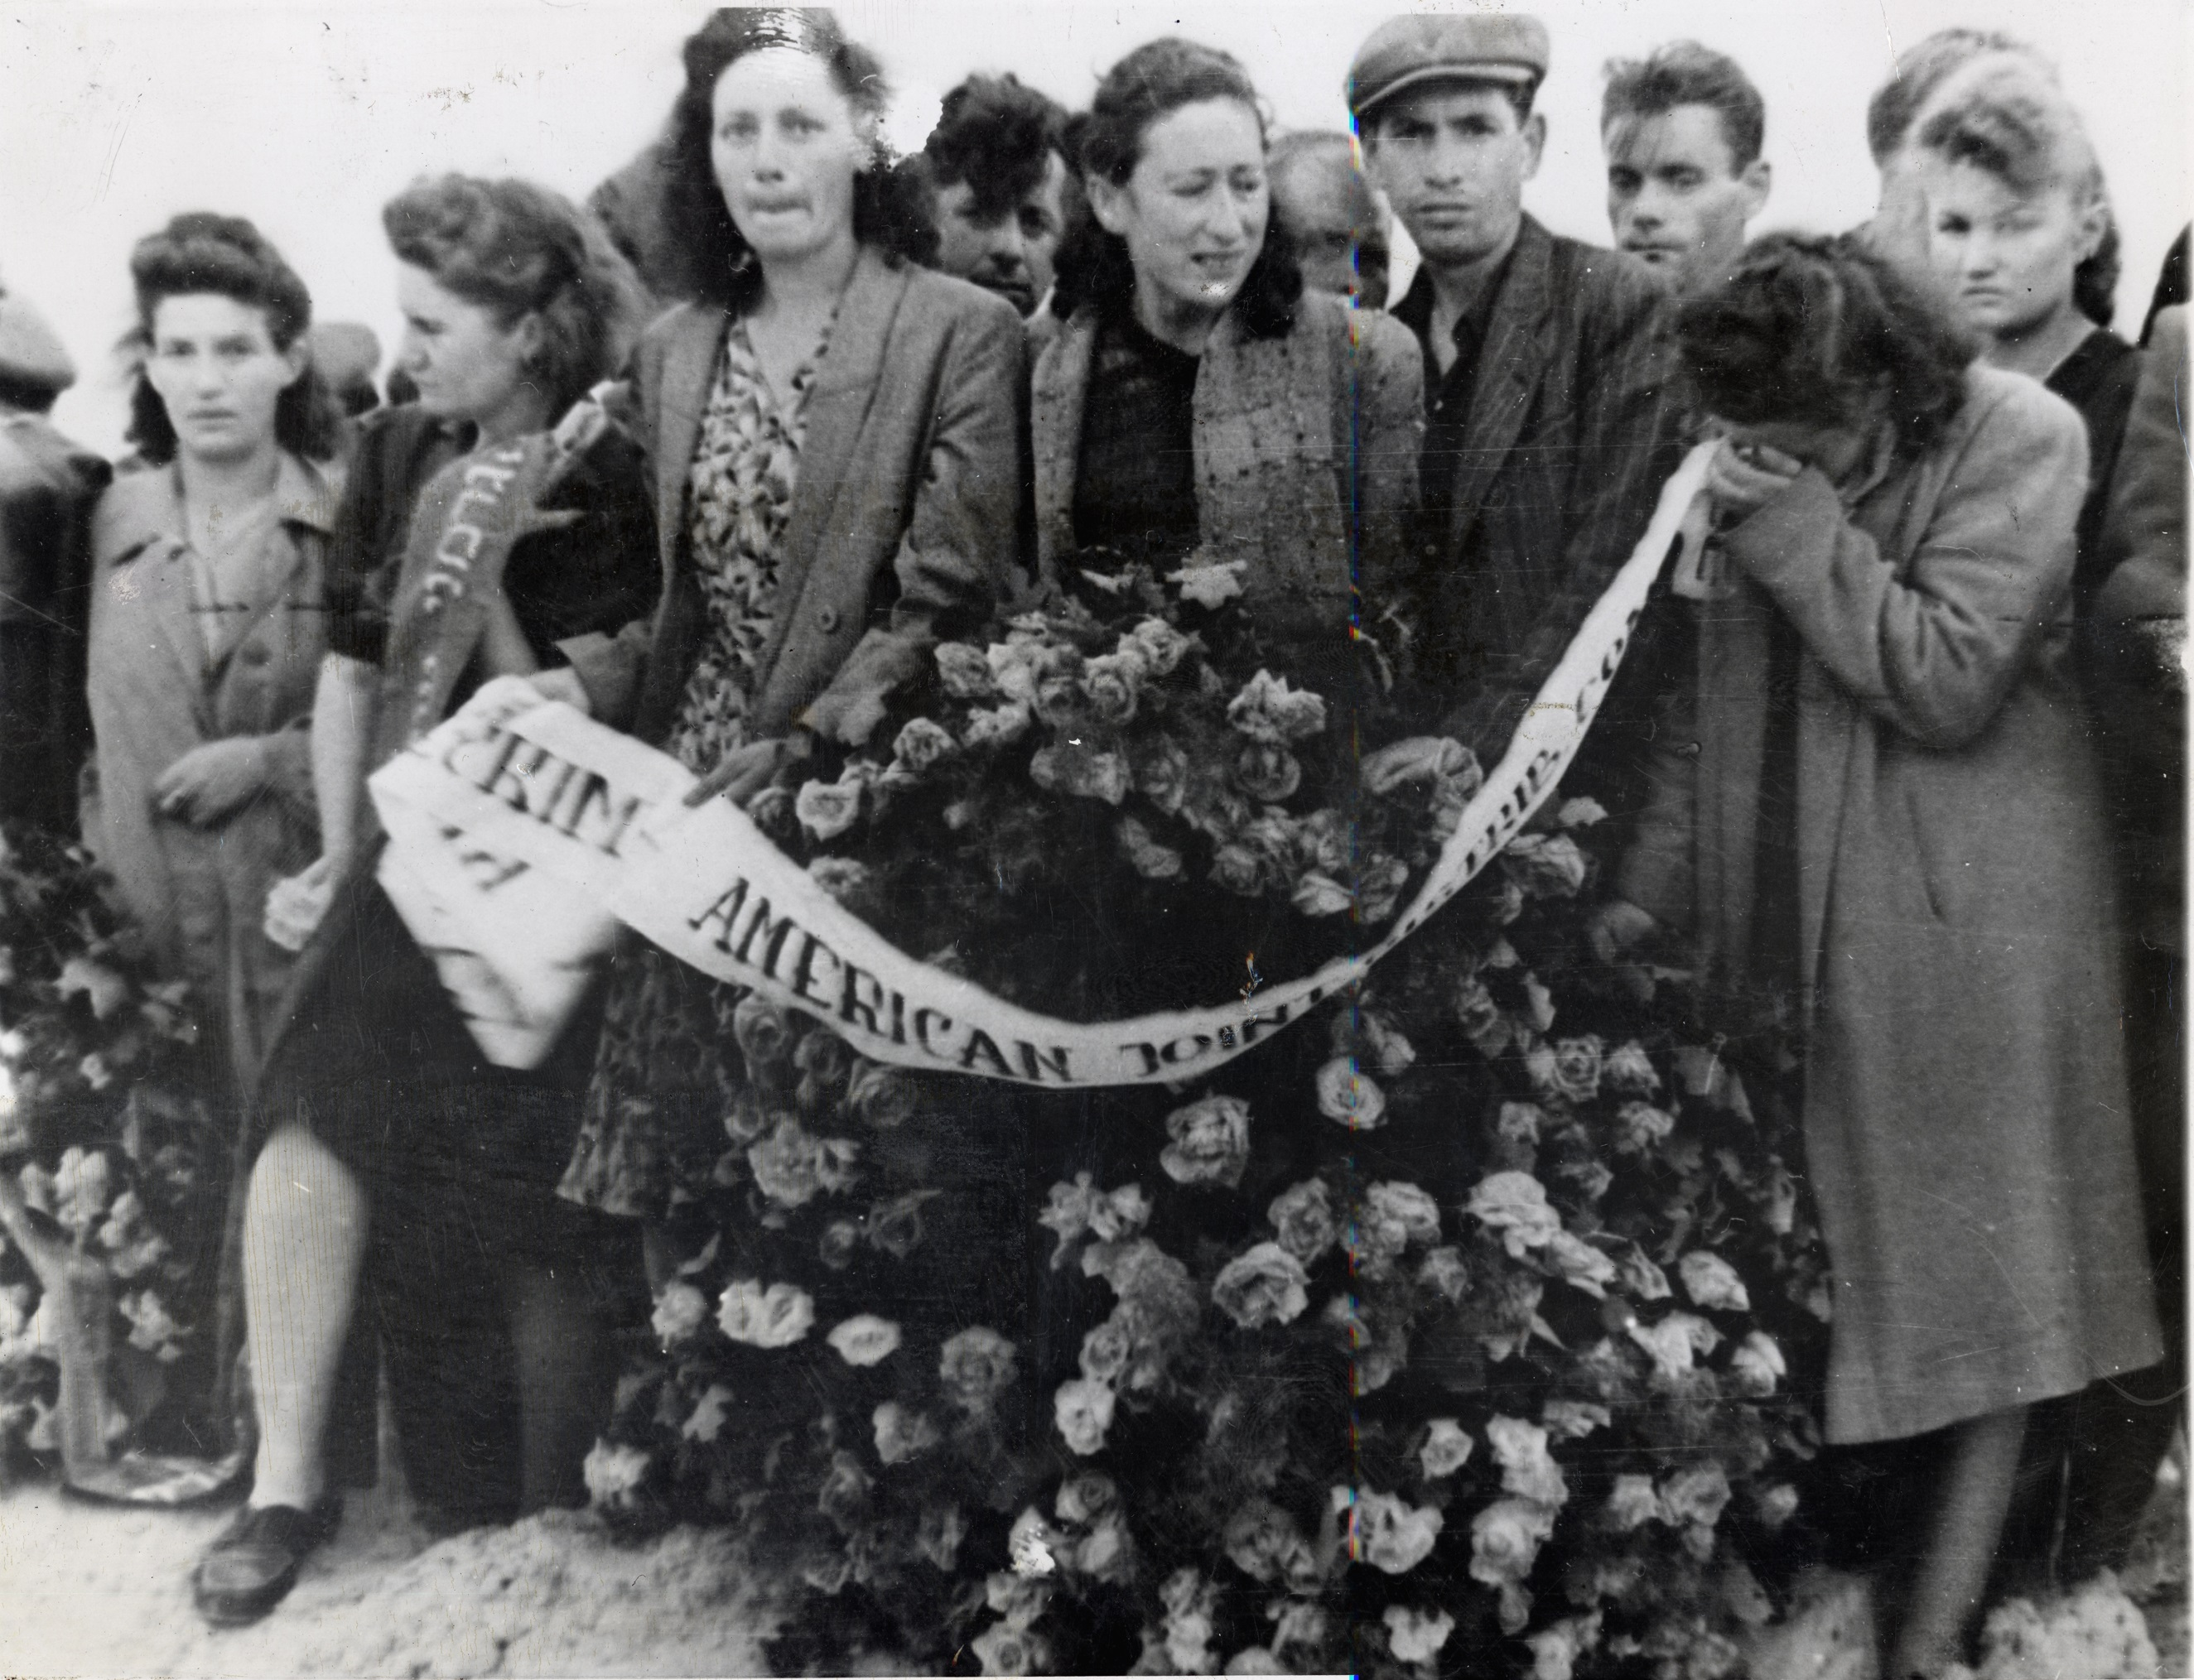 The Joint delegation at the funeral of victims of the Kielce pogrom, Poland, 1946. This pogrom, so soon after World War II, sparked the emigration of tens of thousands of Polish Jewish survivors immediately after the war.